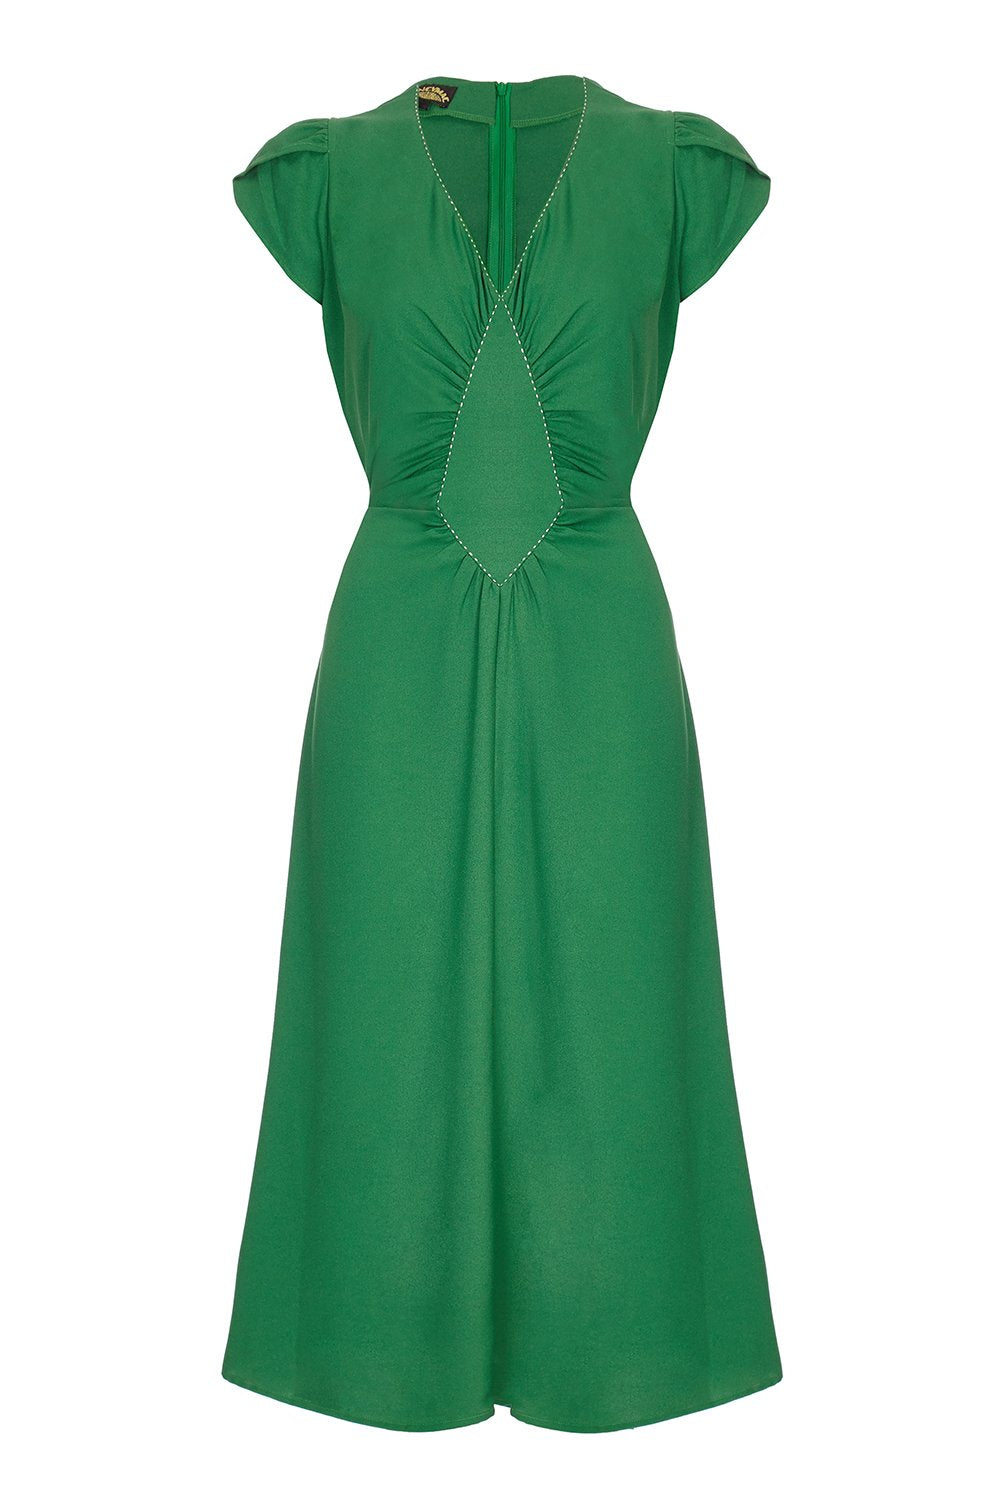 Anya dress in Montecarlo green moss crepe